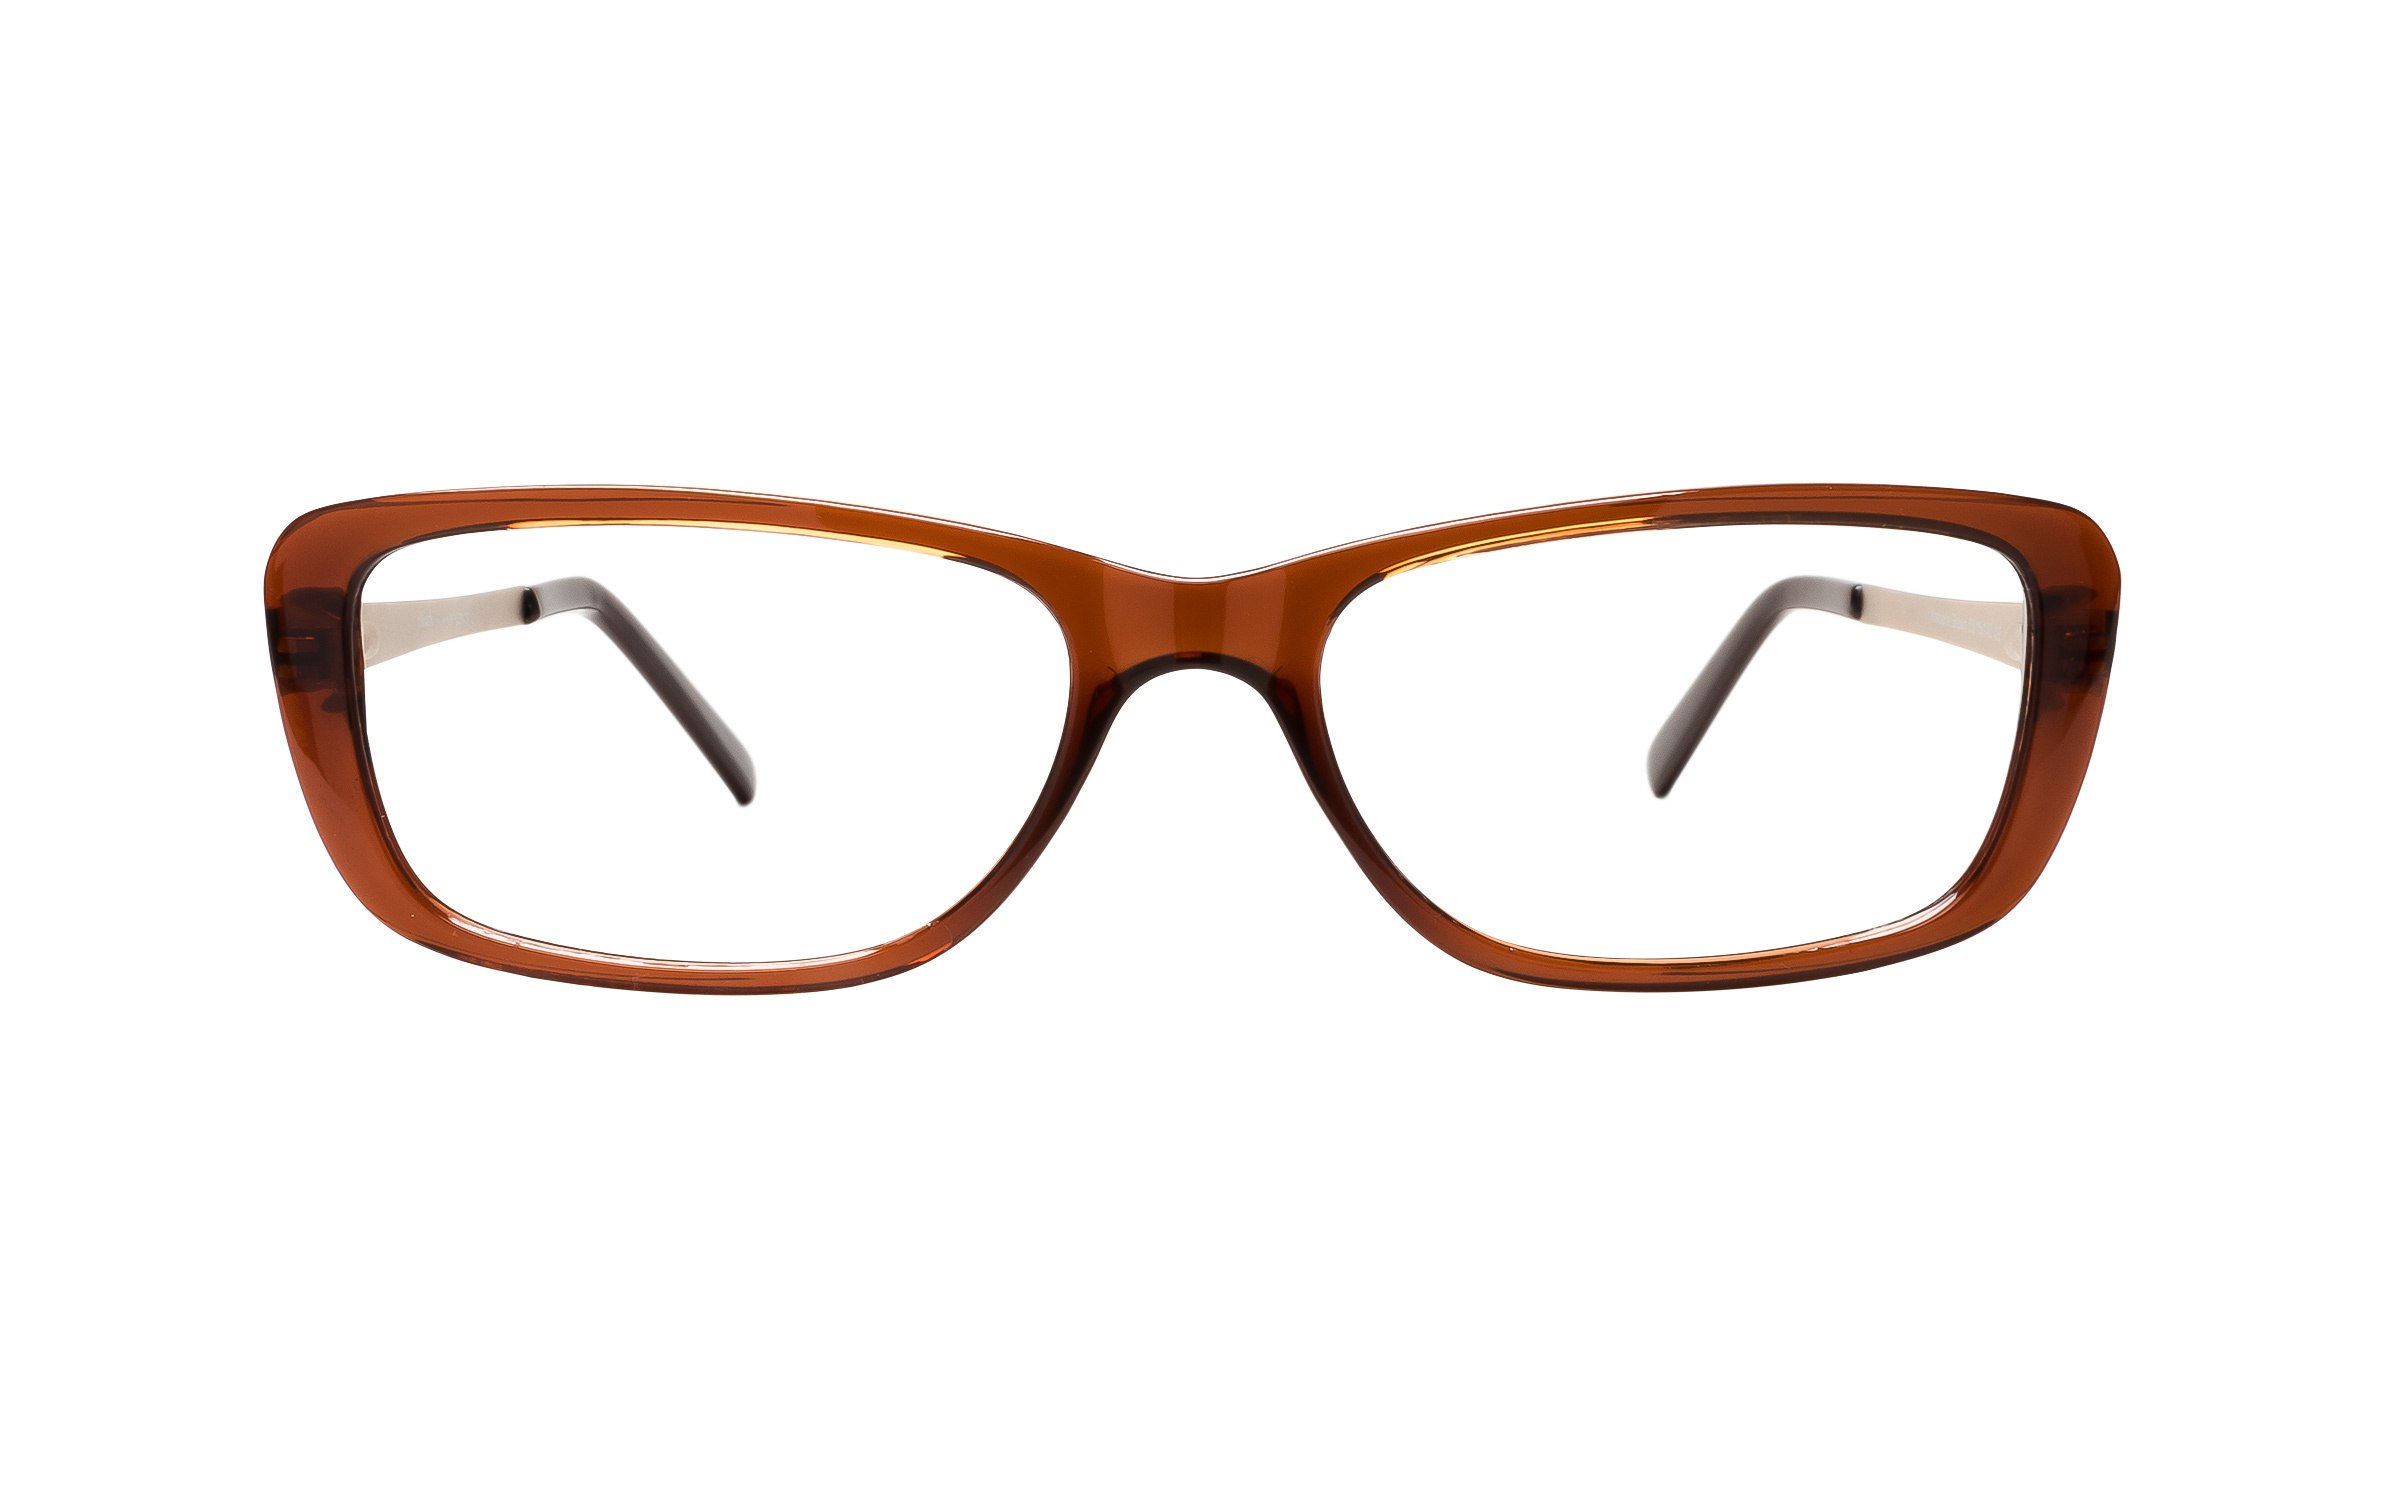 Main and Central Marbella (53) Eyeglasses and Frame in Brown | Plastic/Metal - Online Coastal